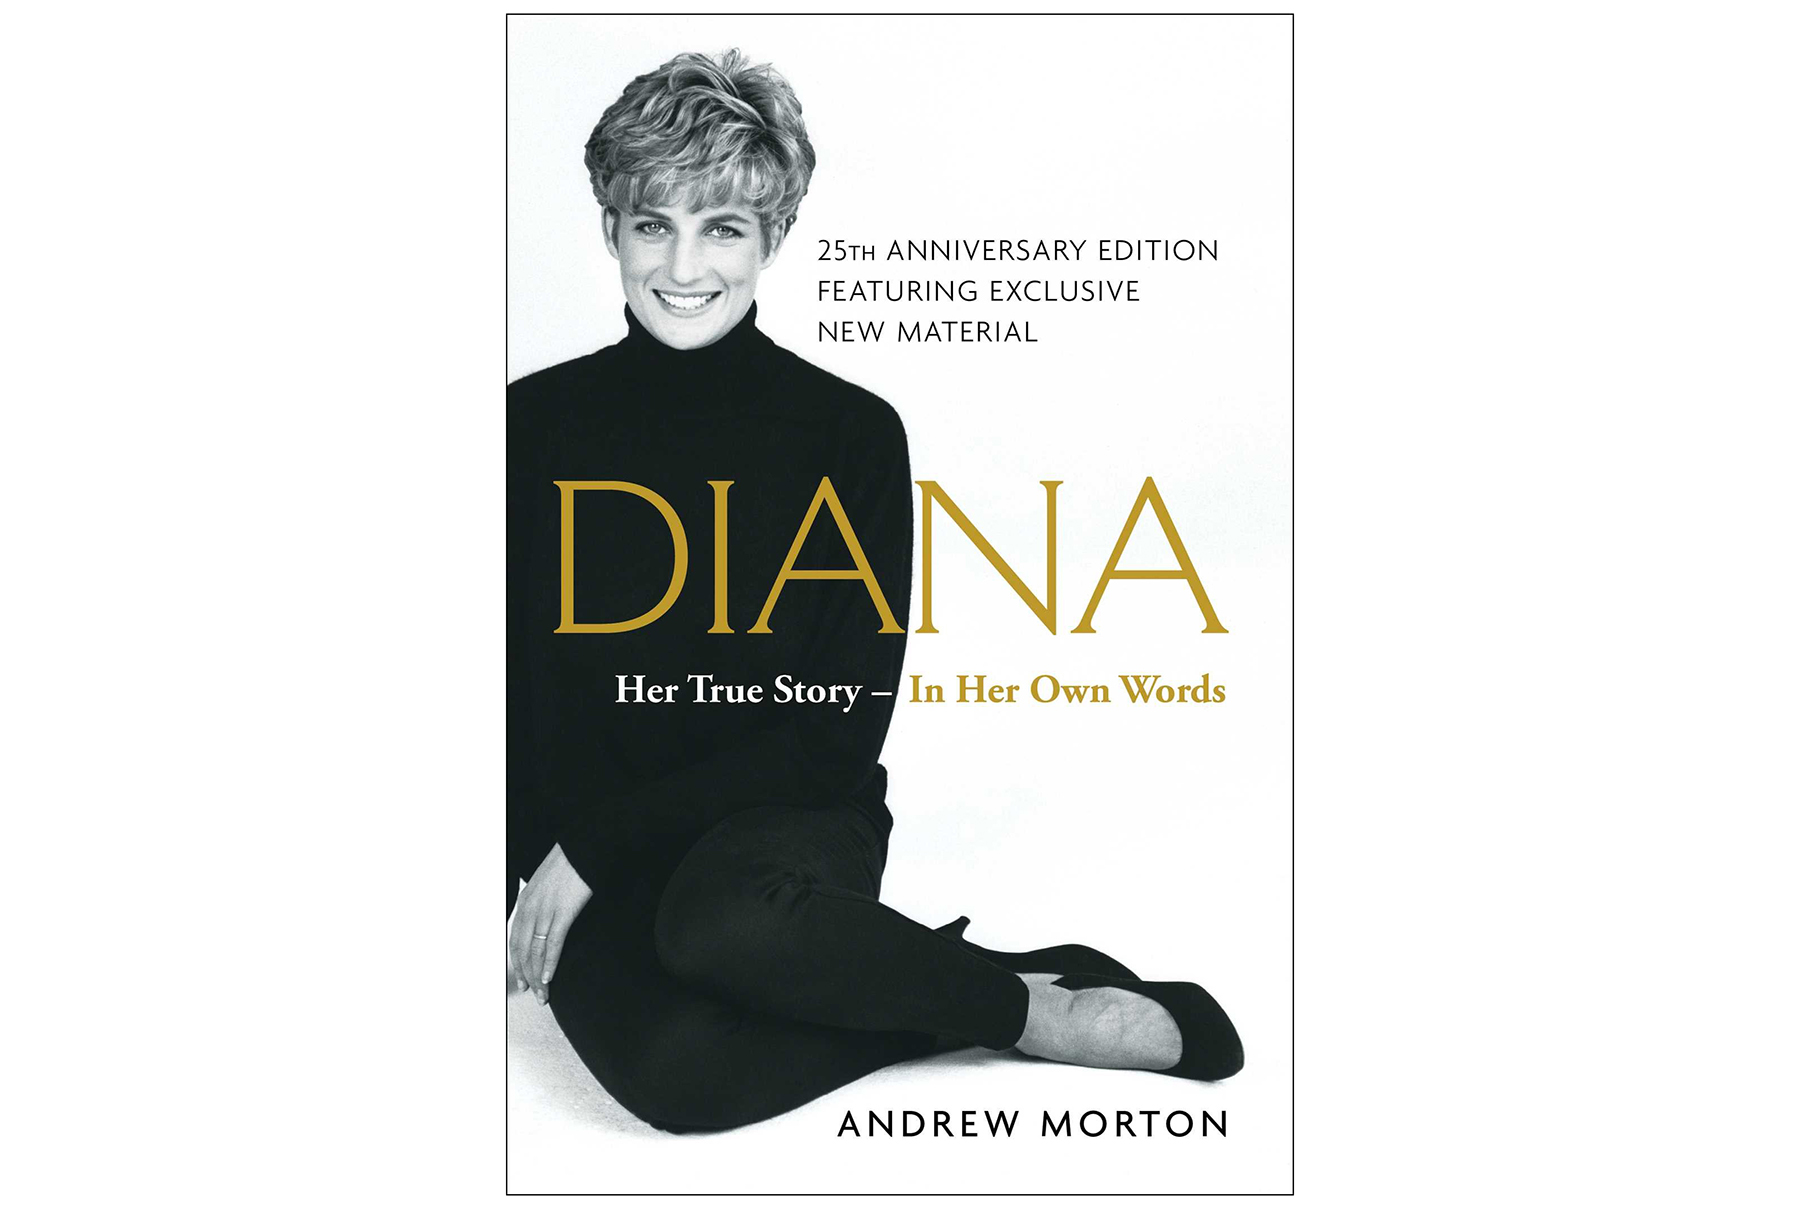 Diana: Her True Story—In Her Own Words, by Andrew Morton